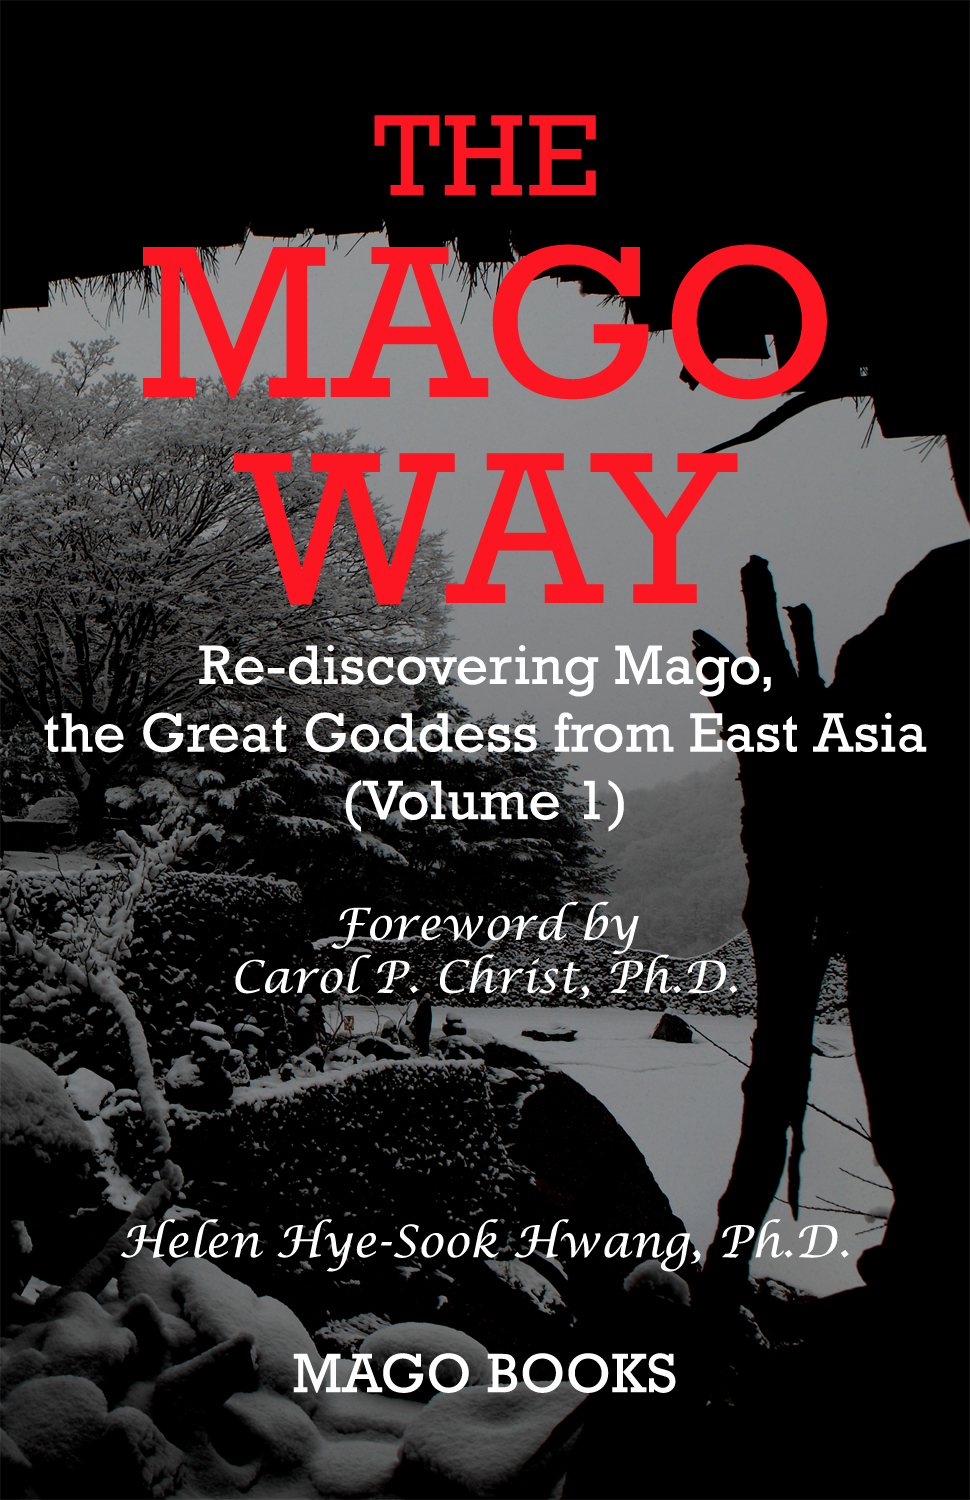 Search for Mago Artists/Illustrators and Writers for Mago Books Projects